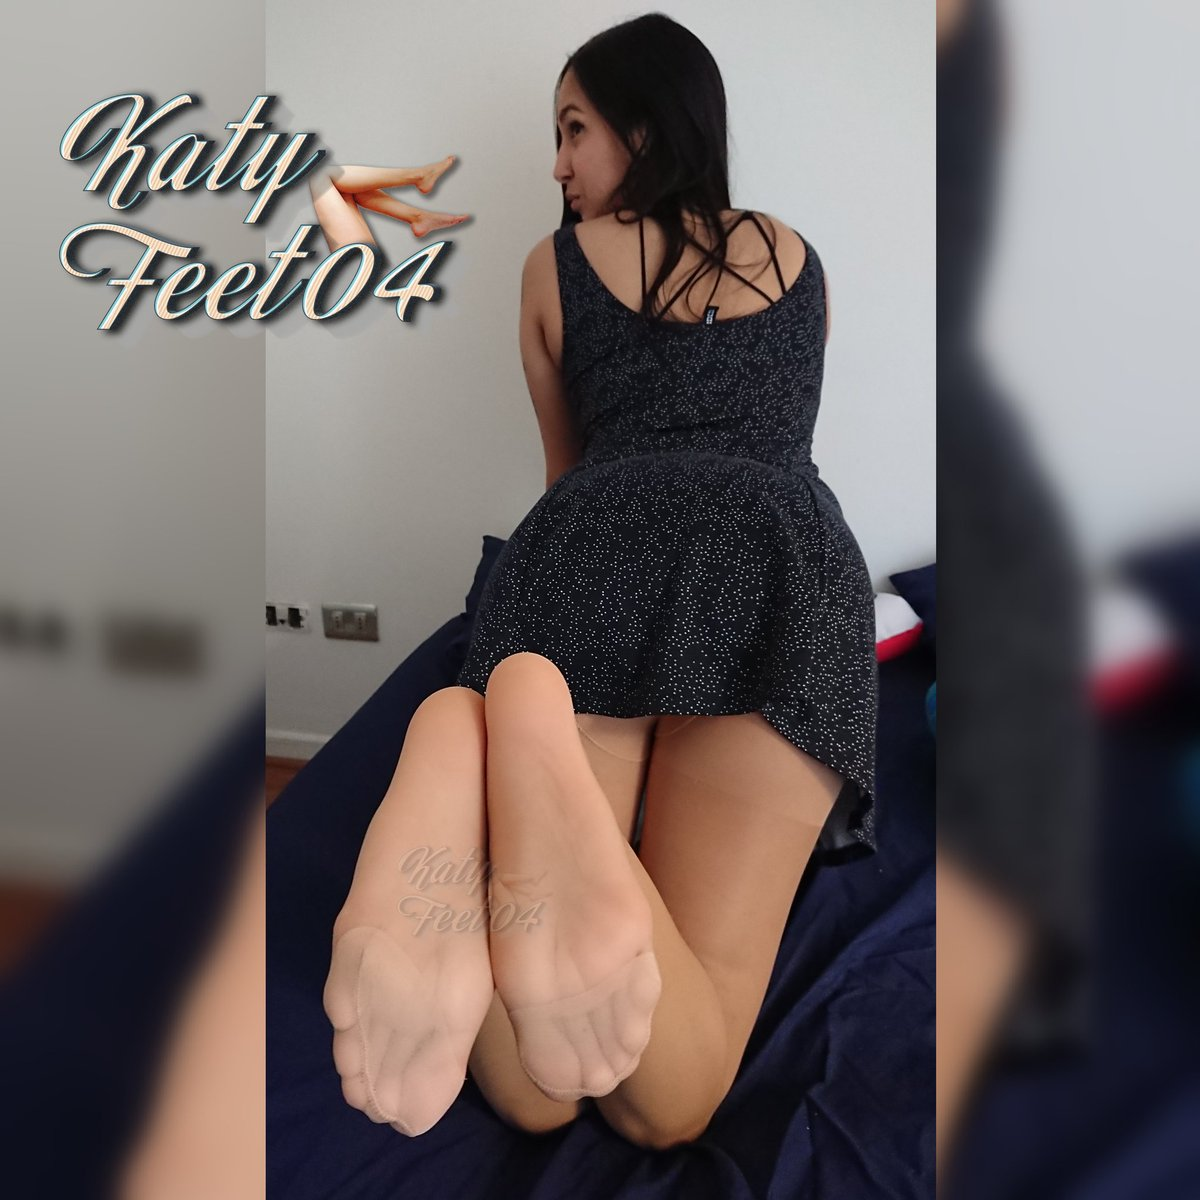 with you group sex xxx gangbang fuck orgy girls very pity me, can